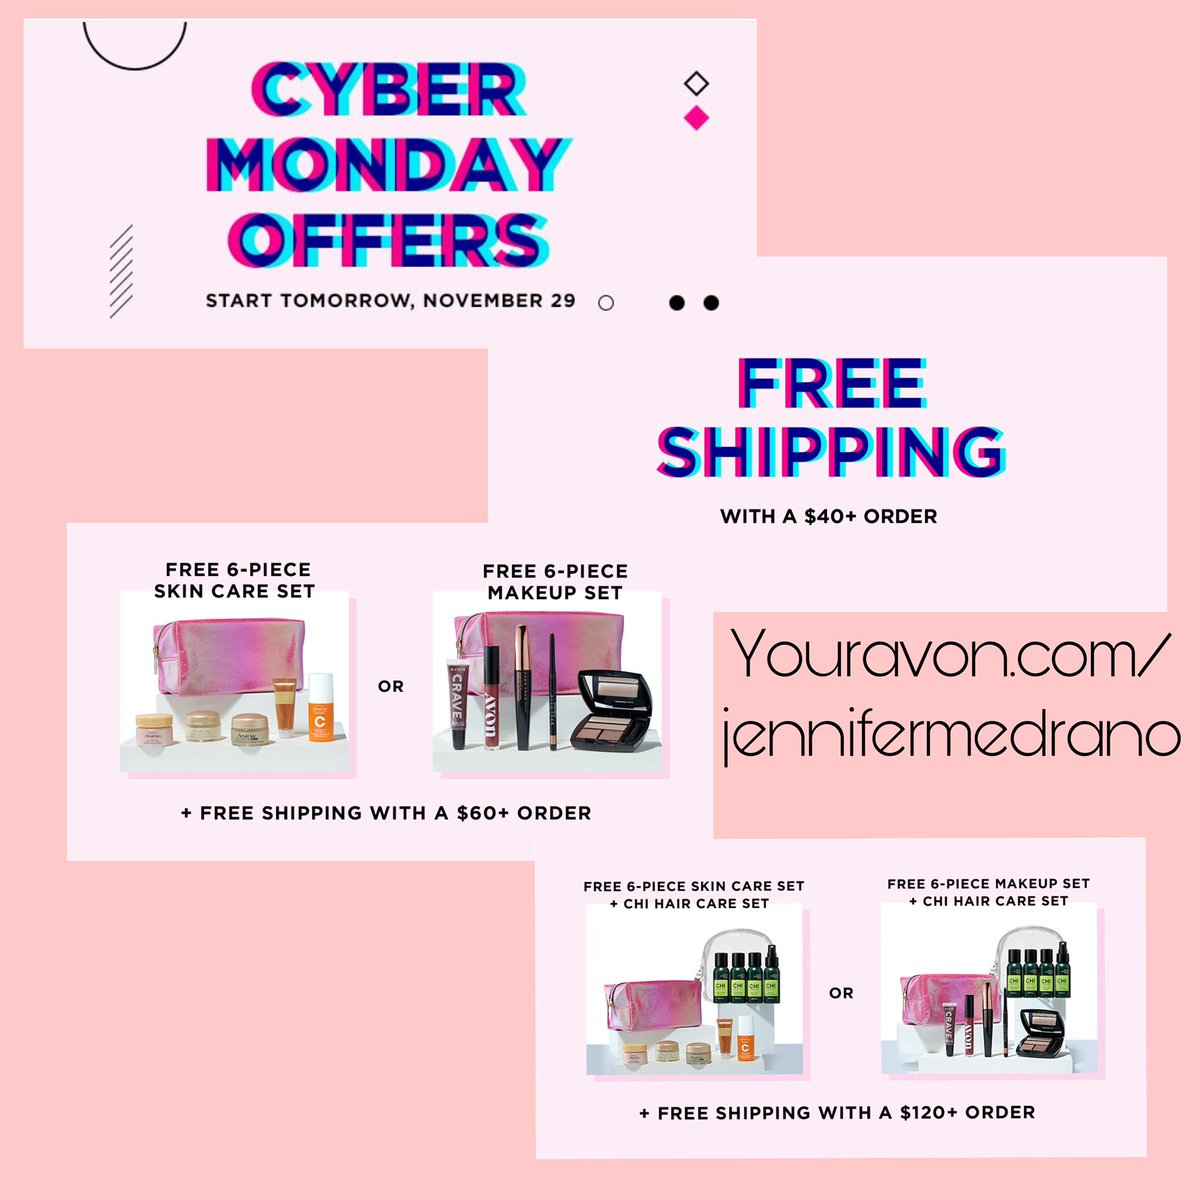 Sneak peak for cyber Monday deals!!   #CyberMonday #cyberMondaydeals #avon #makeup #skincare #haircare #fragrance #mensgifts #freeshipping #onlineshopping #shopsmall